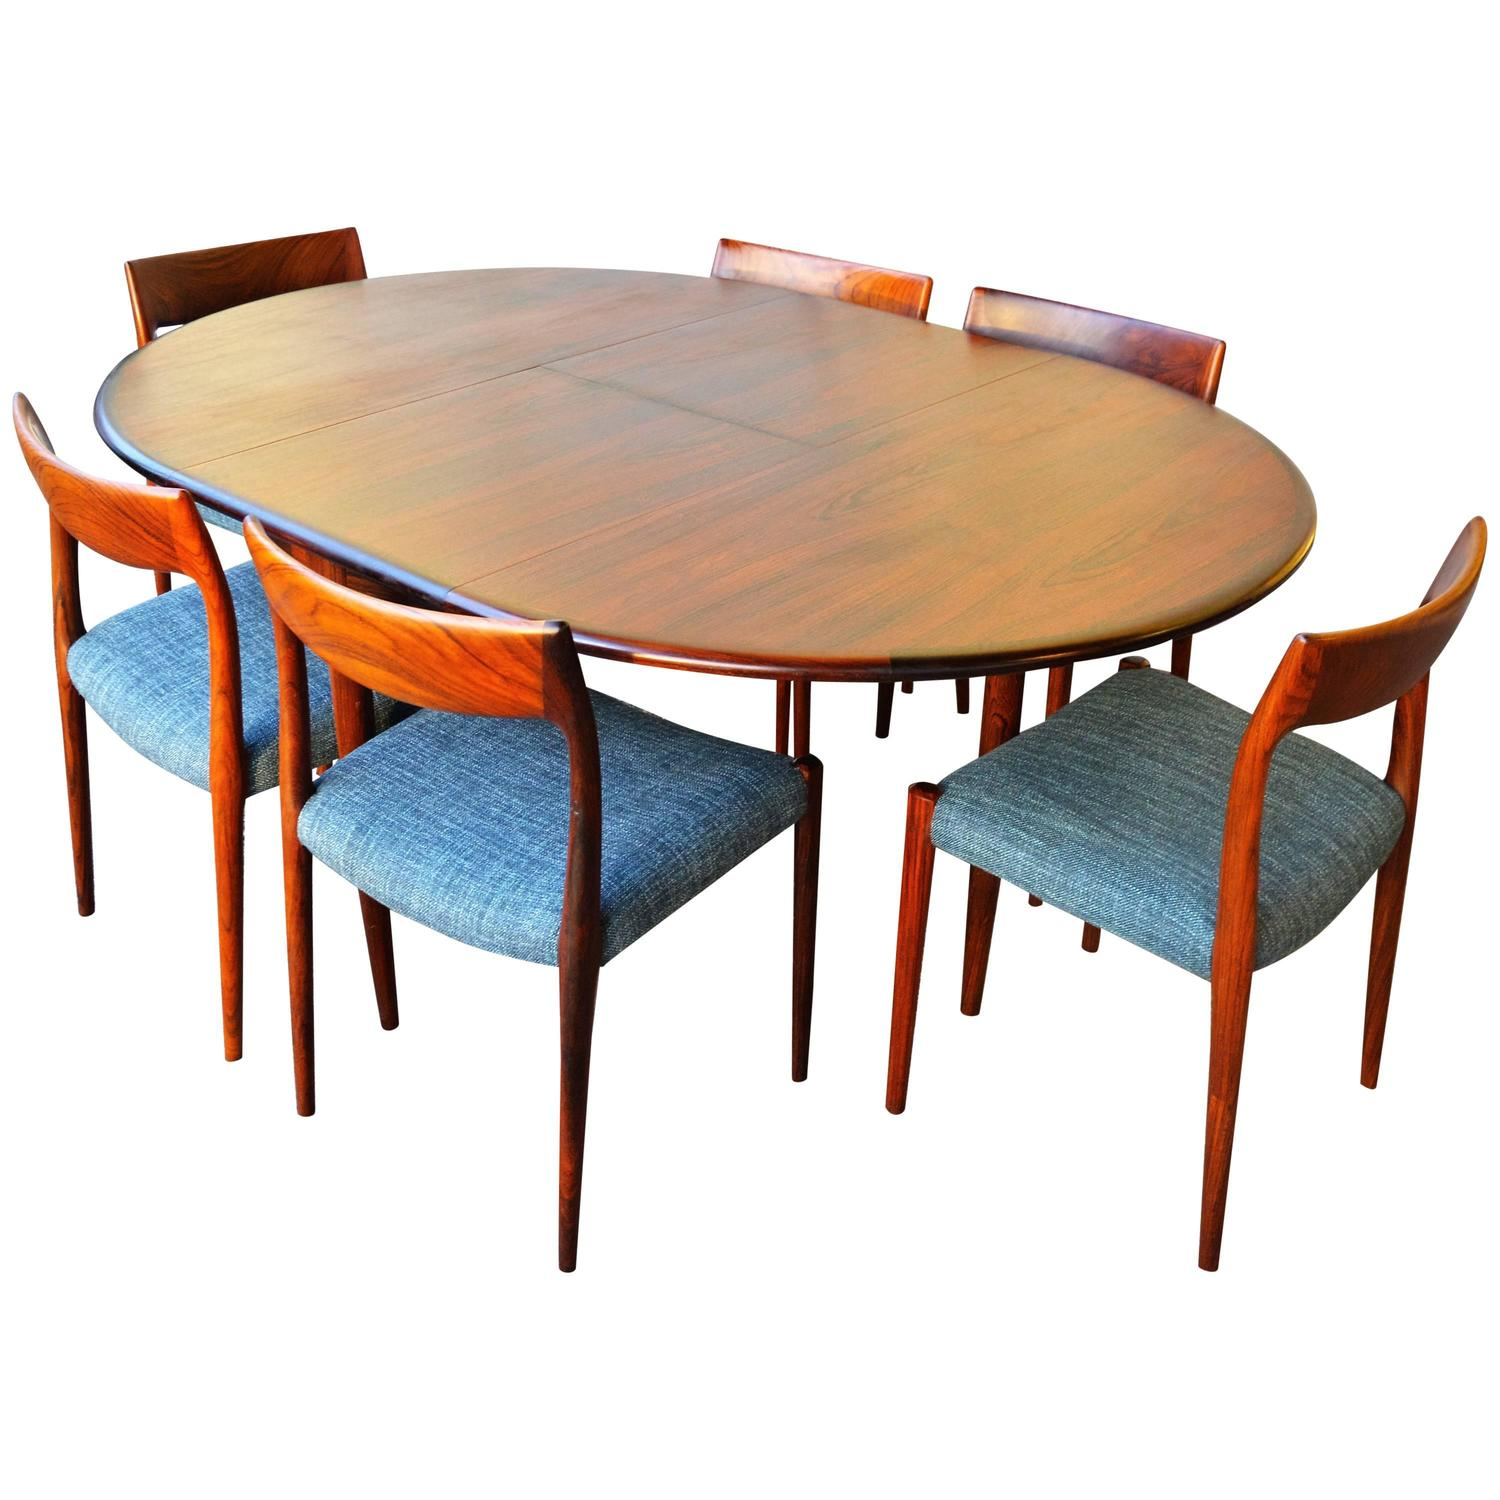 Unique Restored N.O. Moller Rosewood Round One Leaf Dining